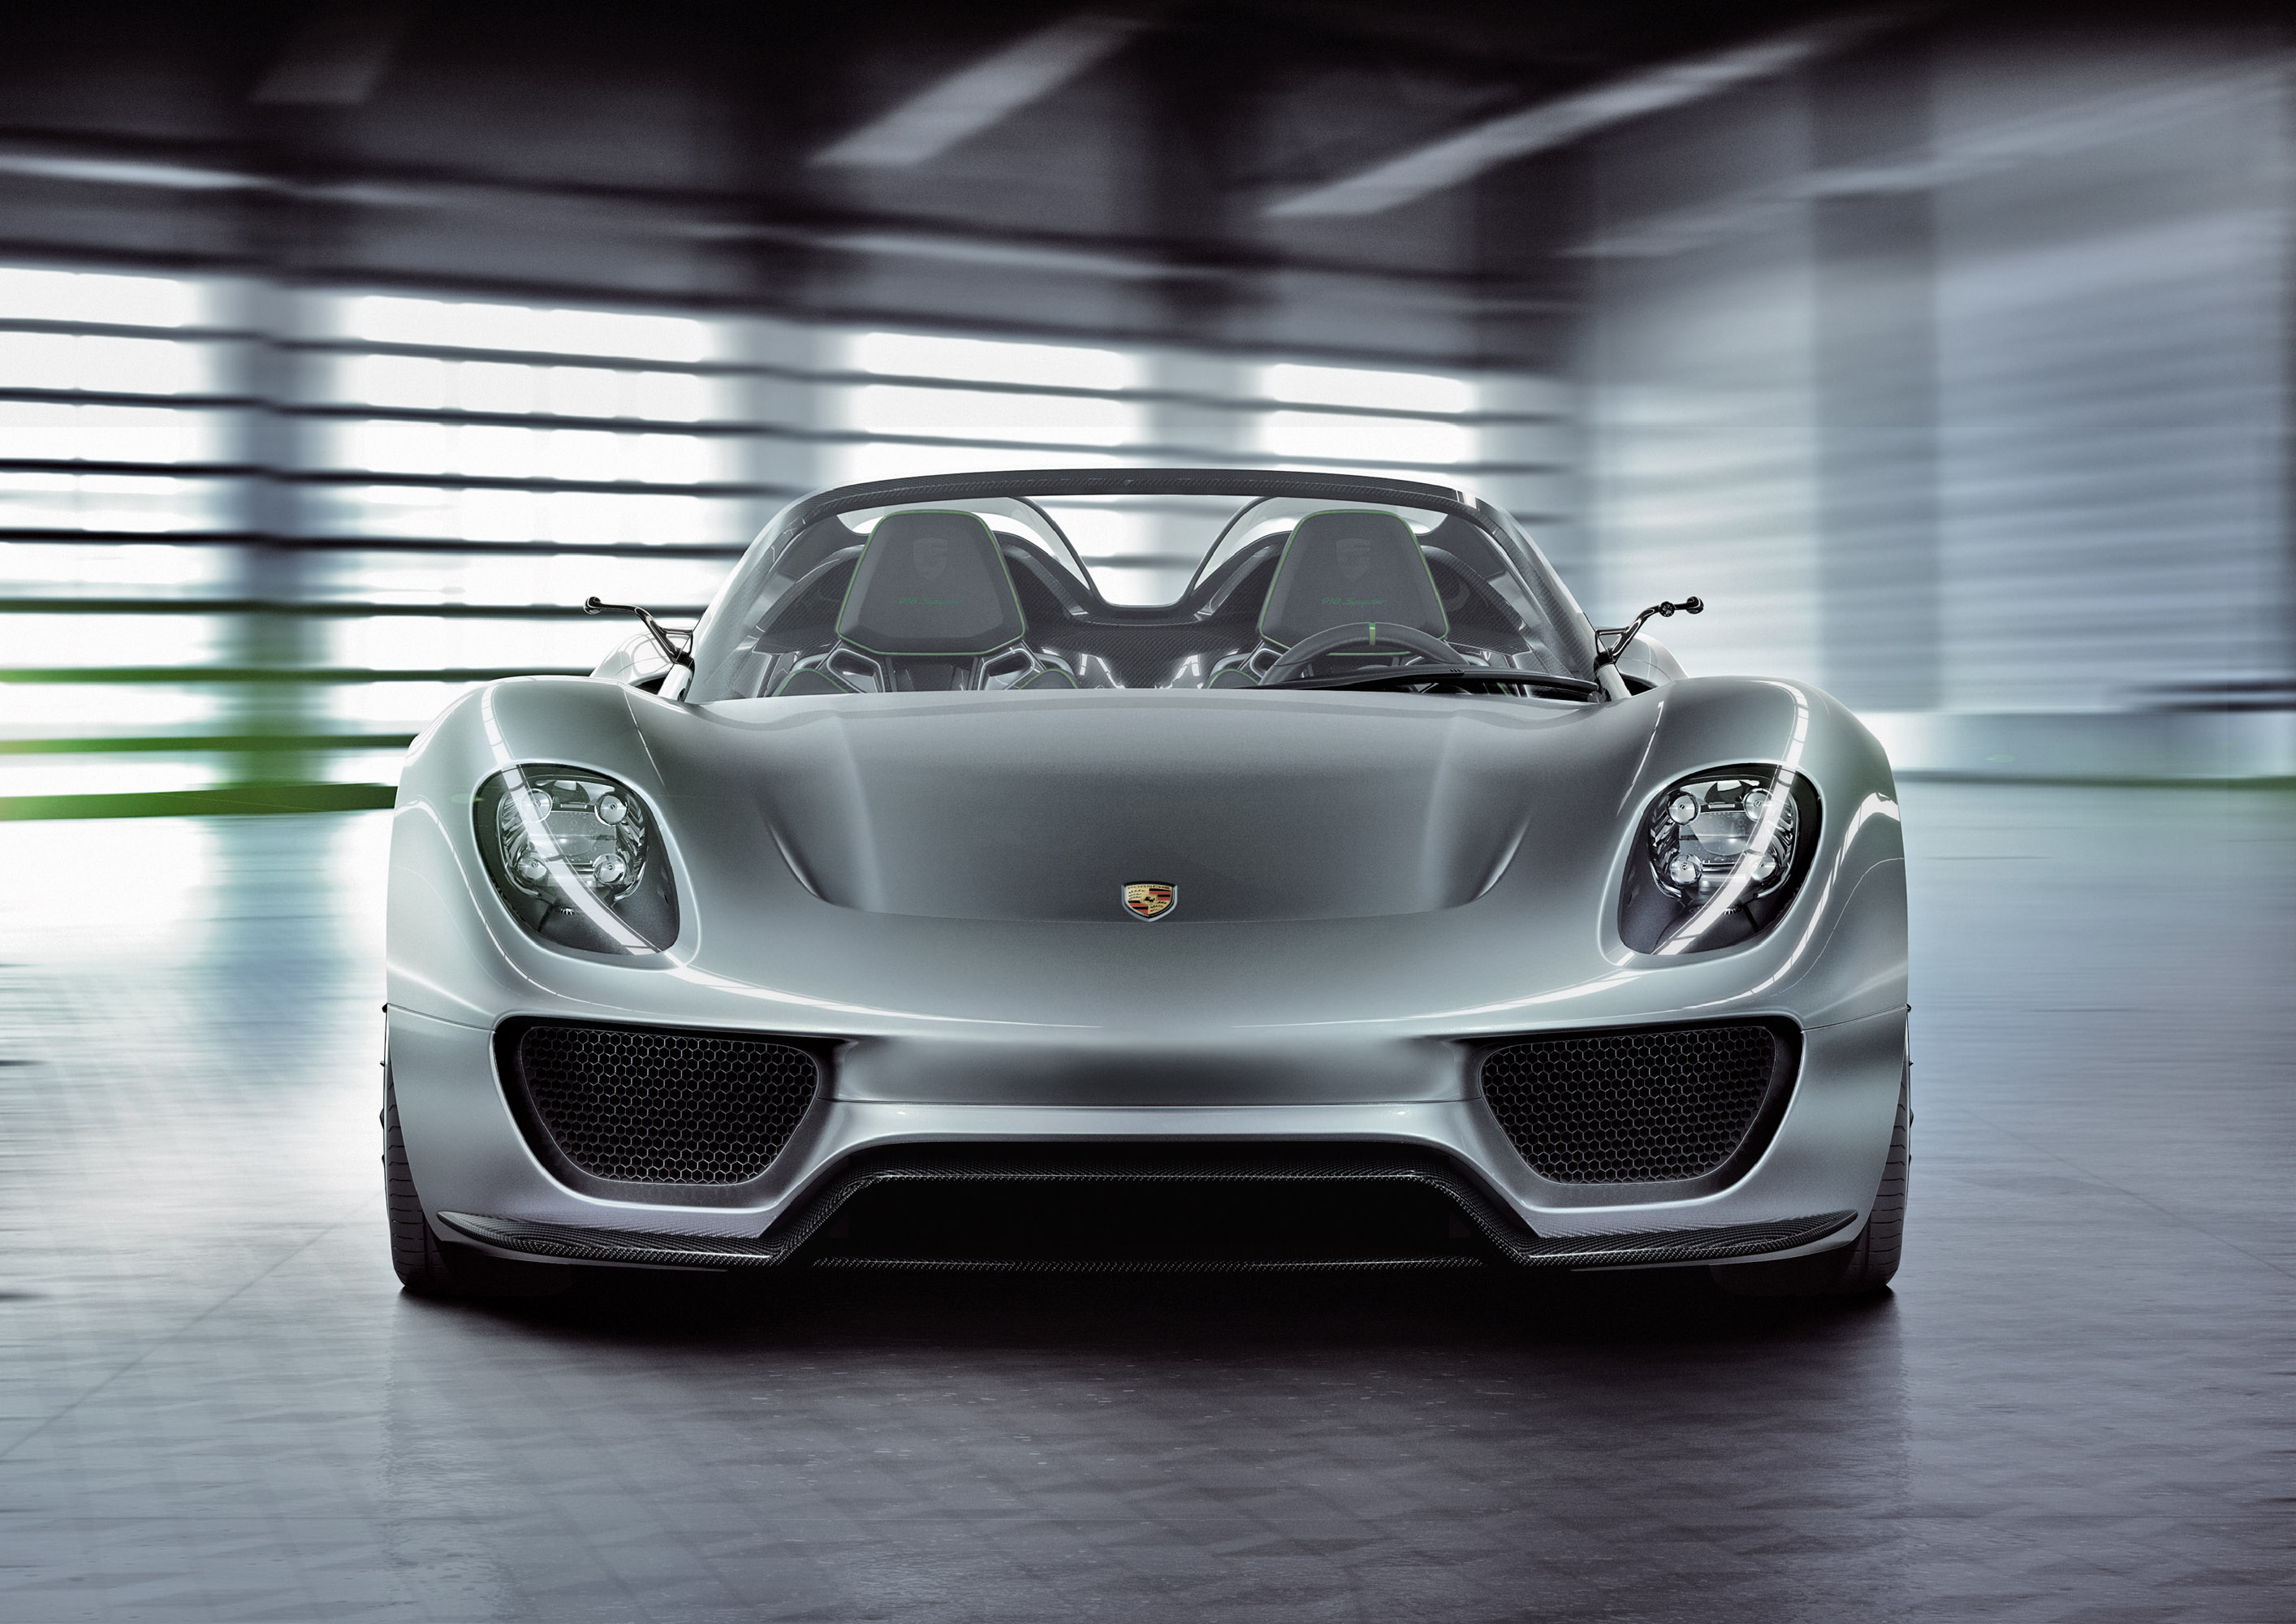 02 porsche 918 spyder hybrid the superslice. Black Bedroom Furniture Sets. Home Design Ideas